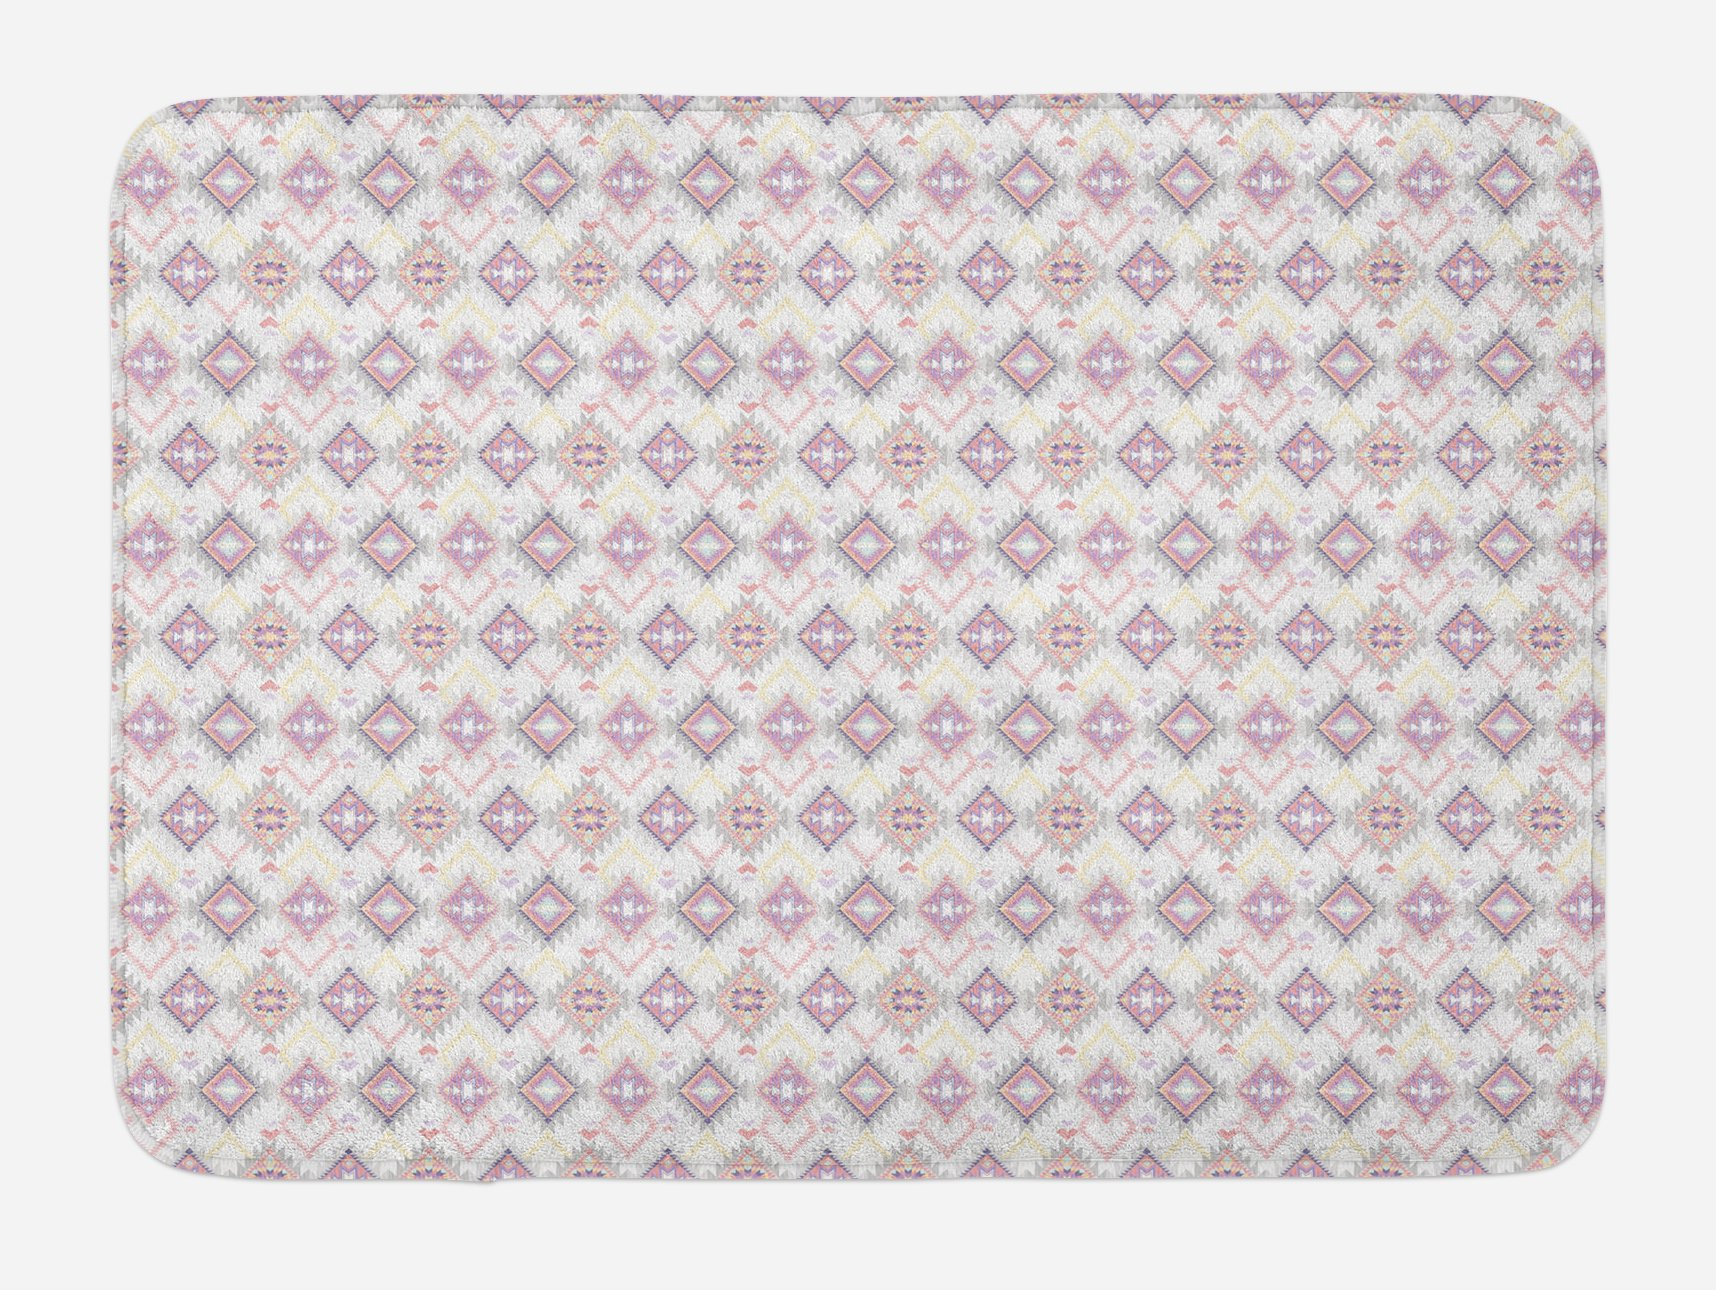 Ambesonne Primitive Country Bath Mat, Pastel Colored Ikat Style Pattern with Grunge Look and Geometric Motifs, Plush Bathroom Decor Mat with Non Slip Backing, 29.5 W X 17.5 W Inches, Multicolor